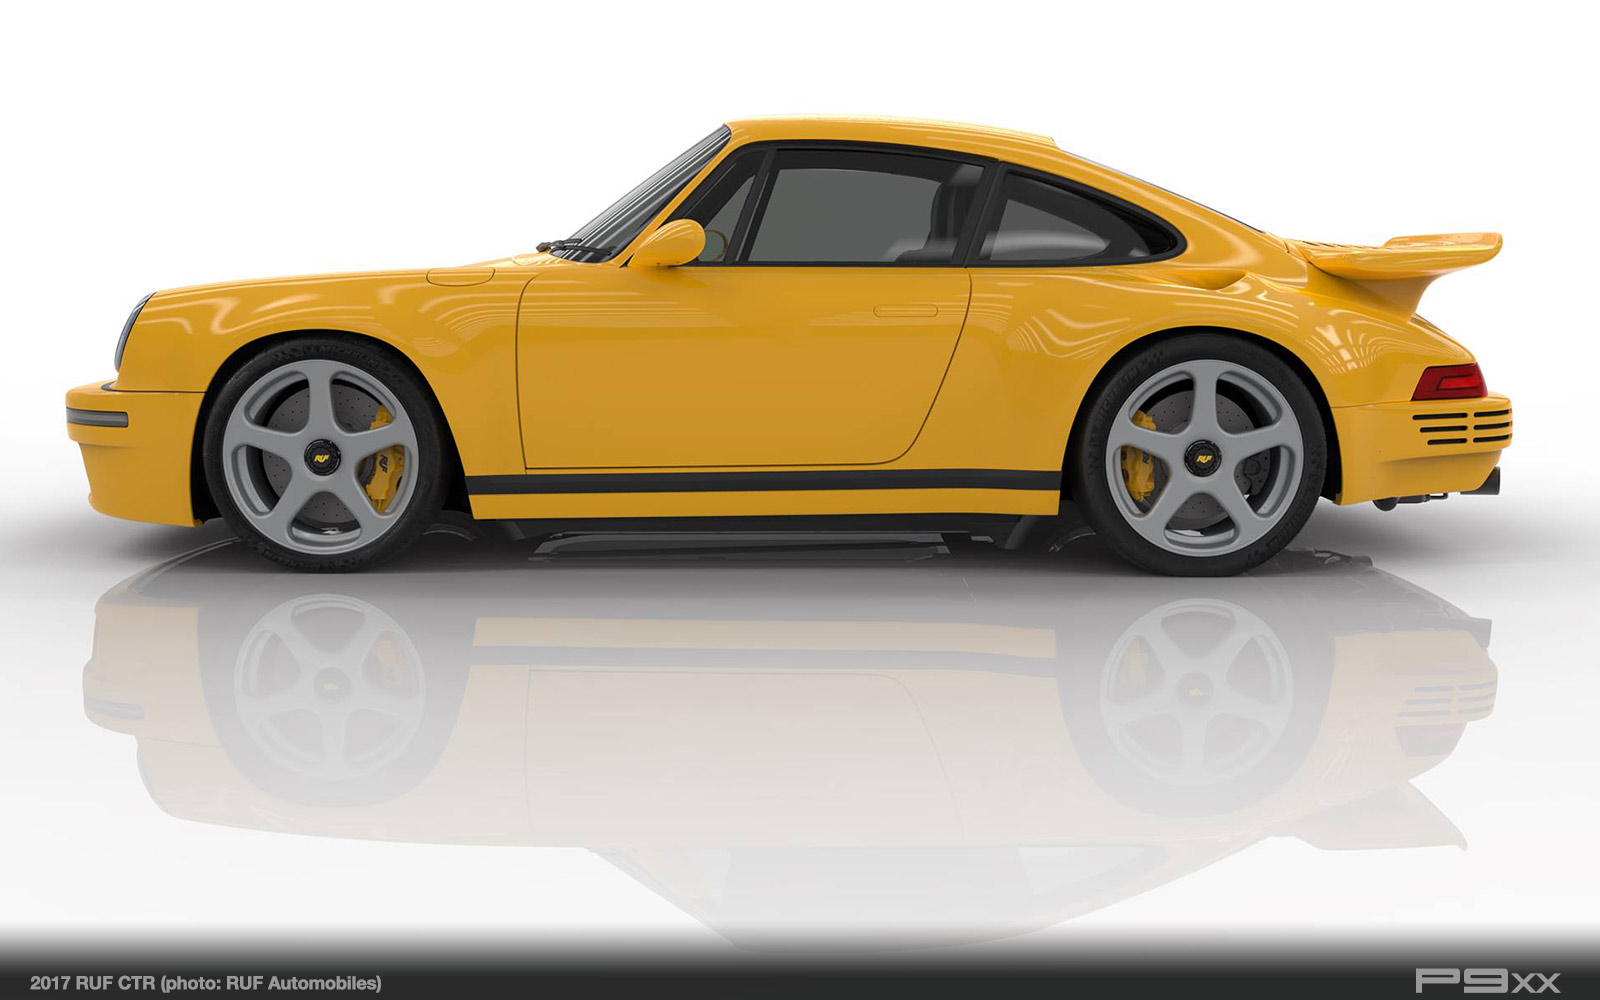 2017 Ruf CTR, World\'s First Rear-Engine Carbon Monocoque Road Car – P9XX